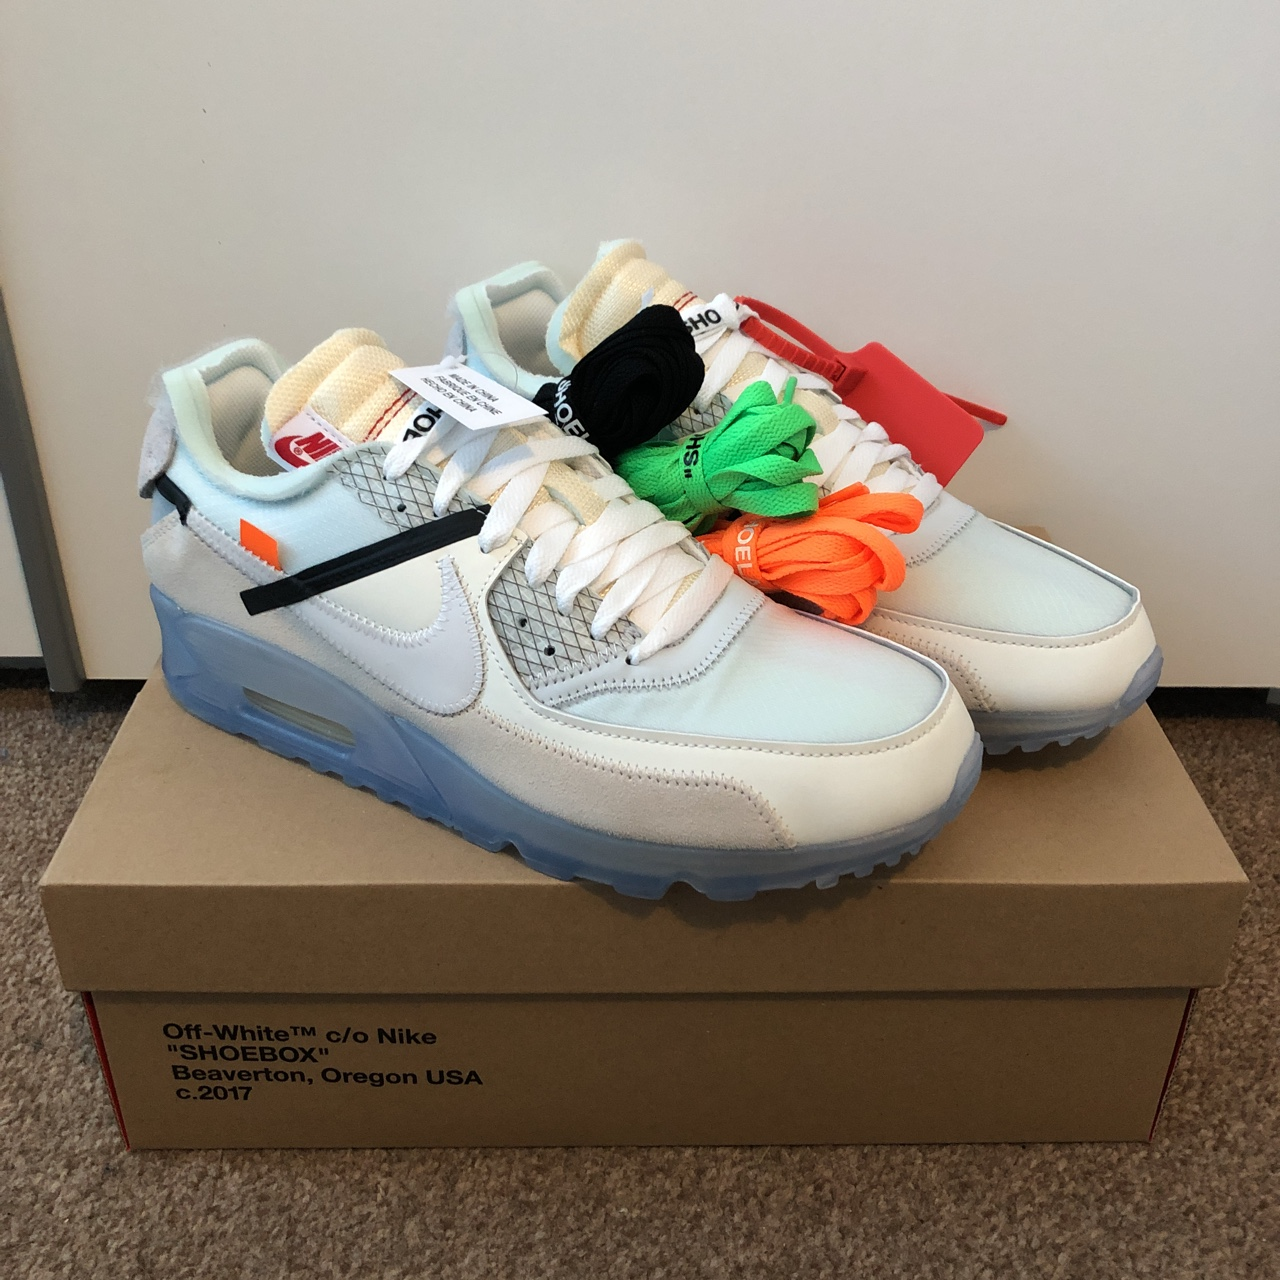 Nike Off White Air Max 90 x Virgil Abloh UK 8.5 Depop